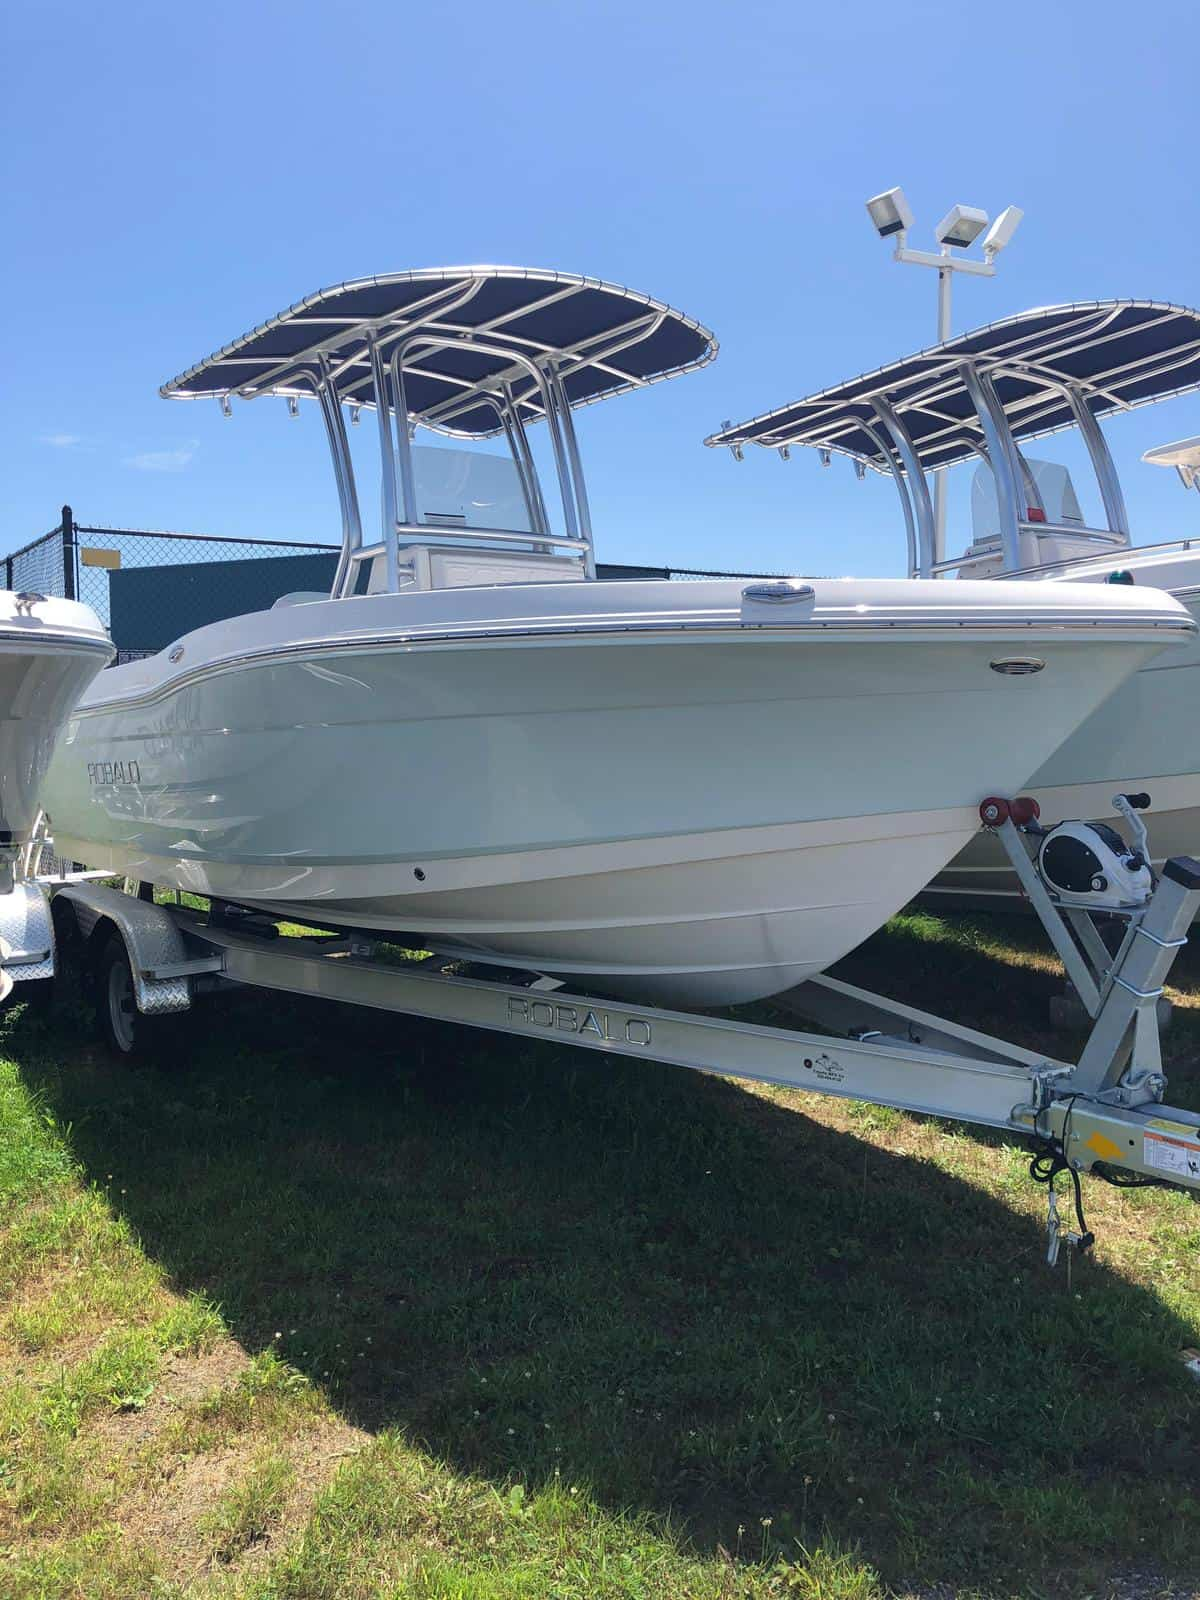 NEW 2018 Robalo R200 - Long Island, NY Boat Dealer | Boat Sales & Rentals